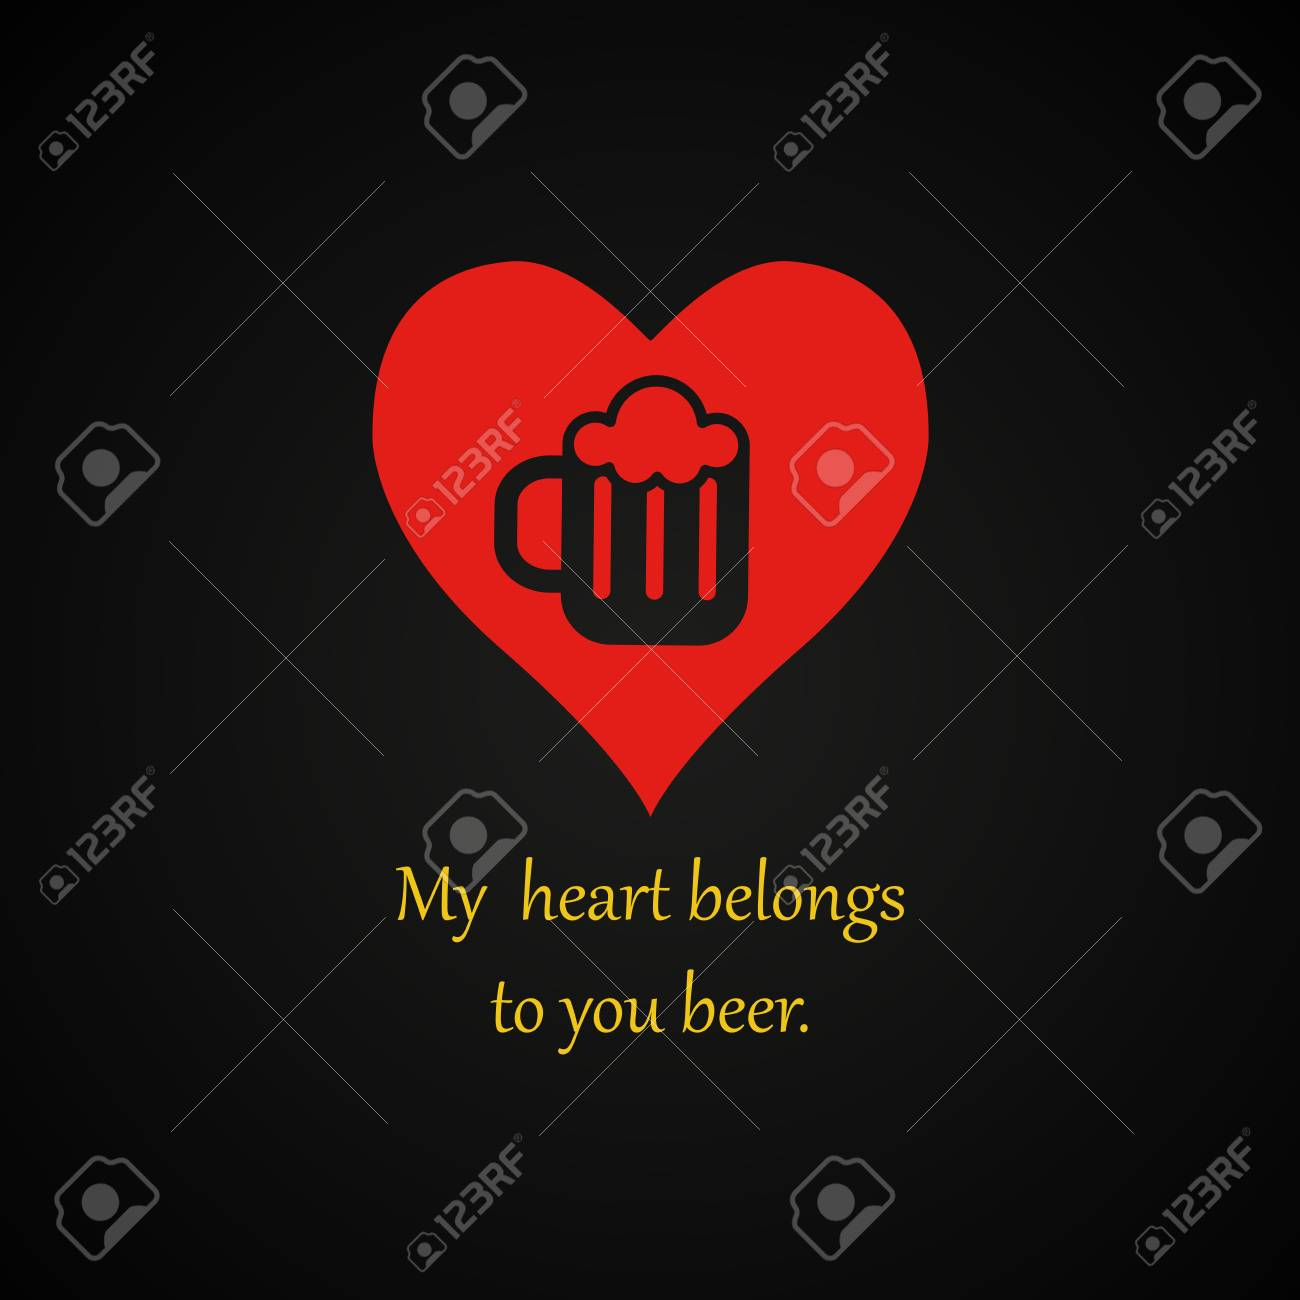 My Heart Belongs To You Beer Beer Quotes Template Royalty Free